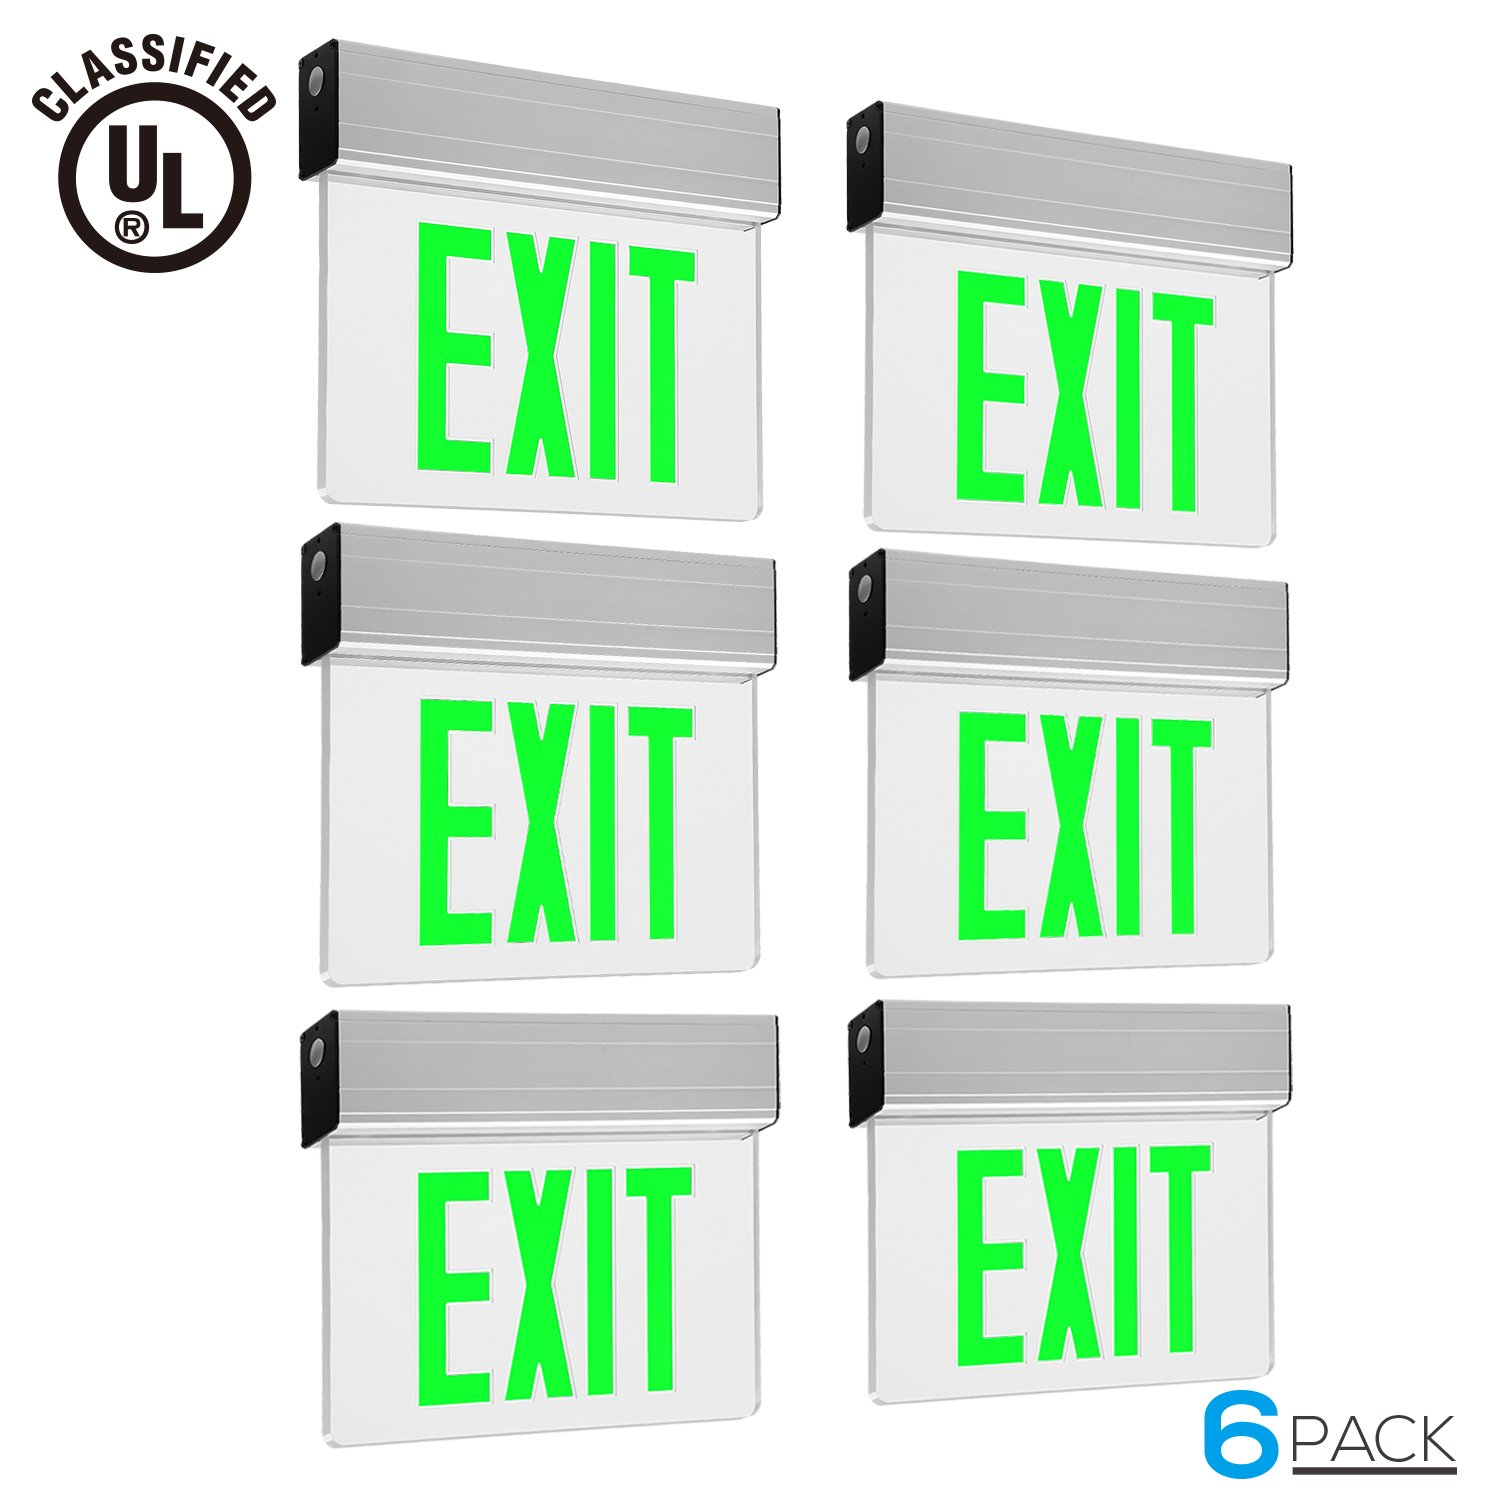 Green LED Exit Sign, UL-Listed Emergency Light, AC 120V/277V, Battery included, Single/Double Face, Ceiling/Side/Back Mount, for Hotels, Restaurants, Shopping Malls, Hospitals, Pack of 6